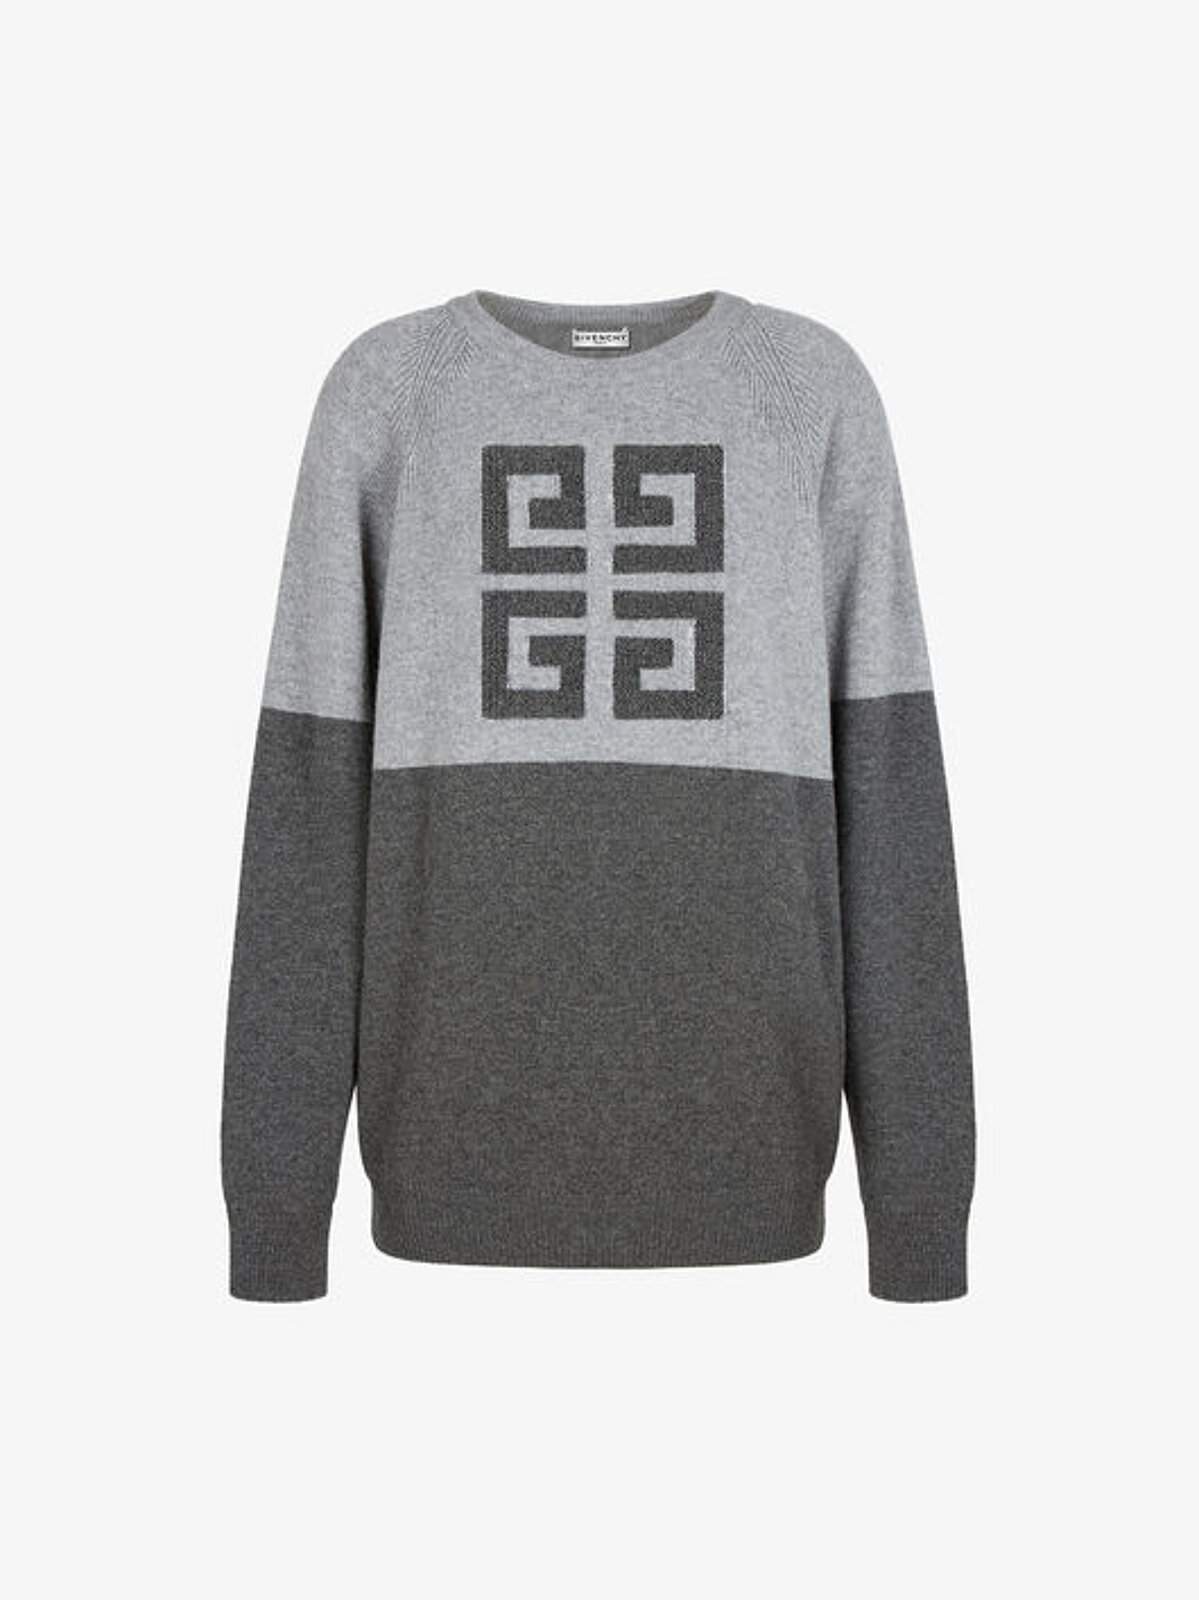 Two-tone Cashmere Pullover With 4G Logo - Givenchy